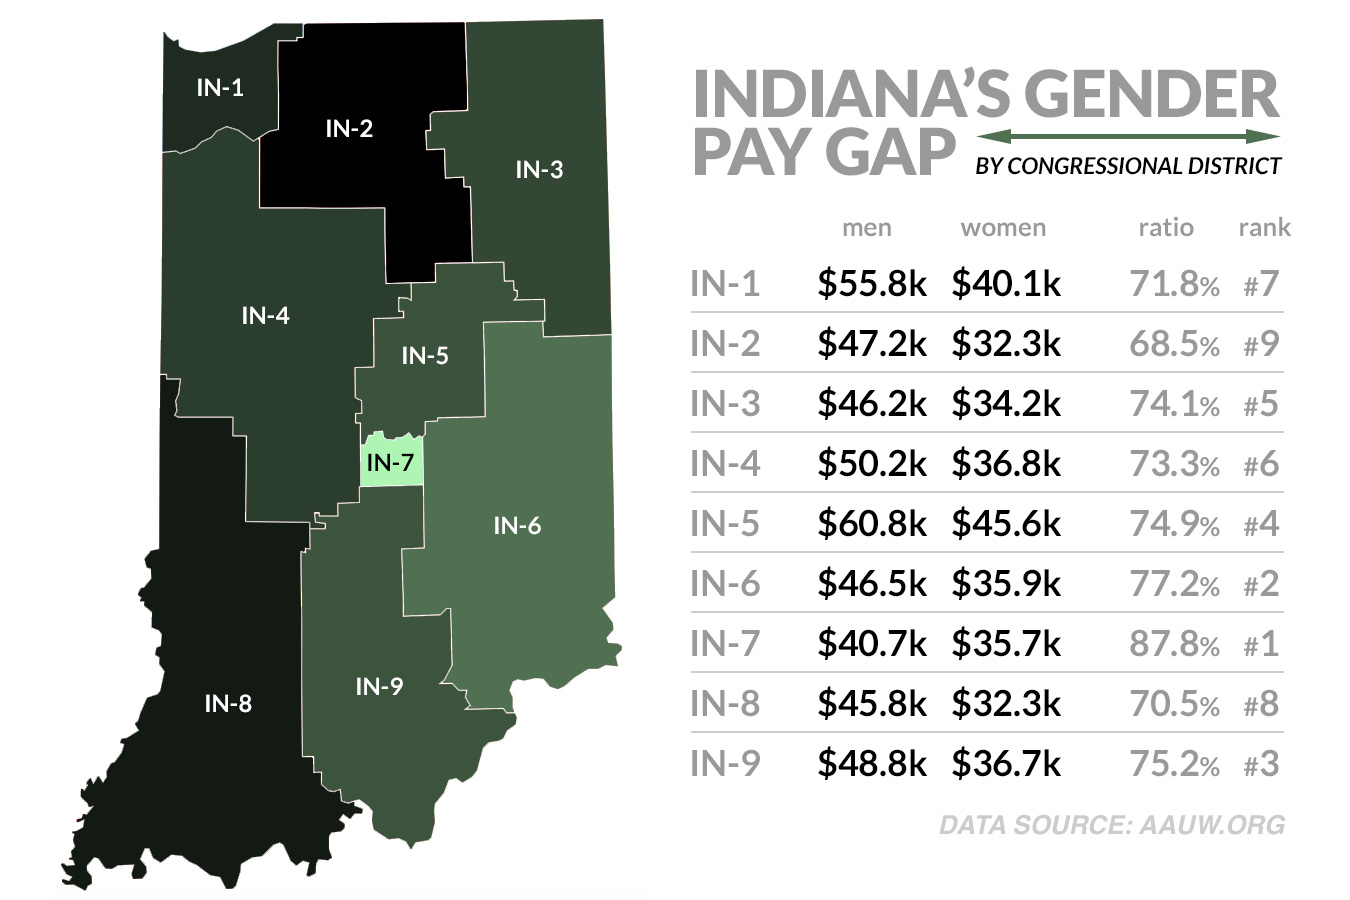 Only four states have a larger gender pay gap than Indiana.